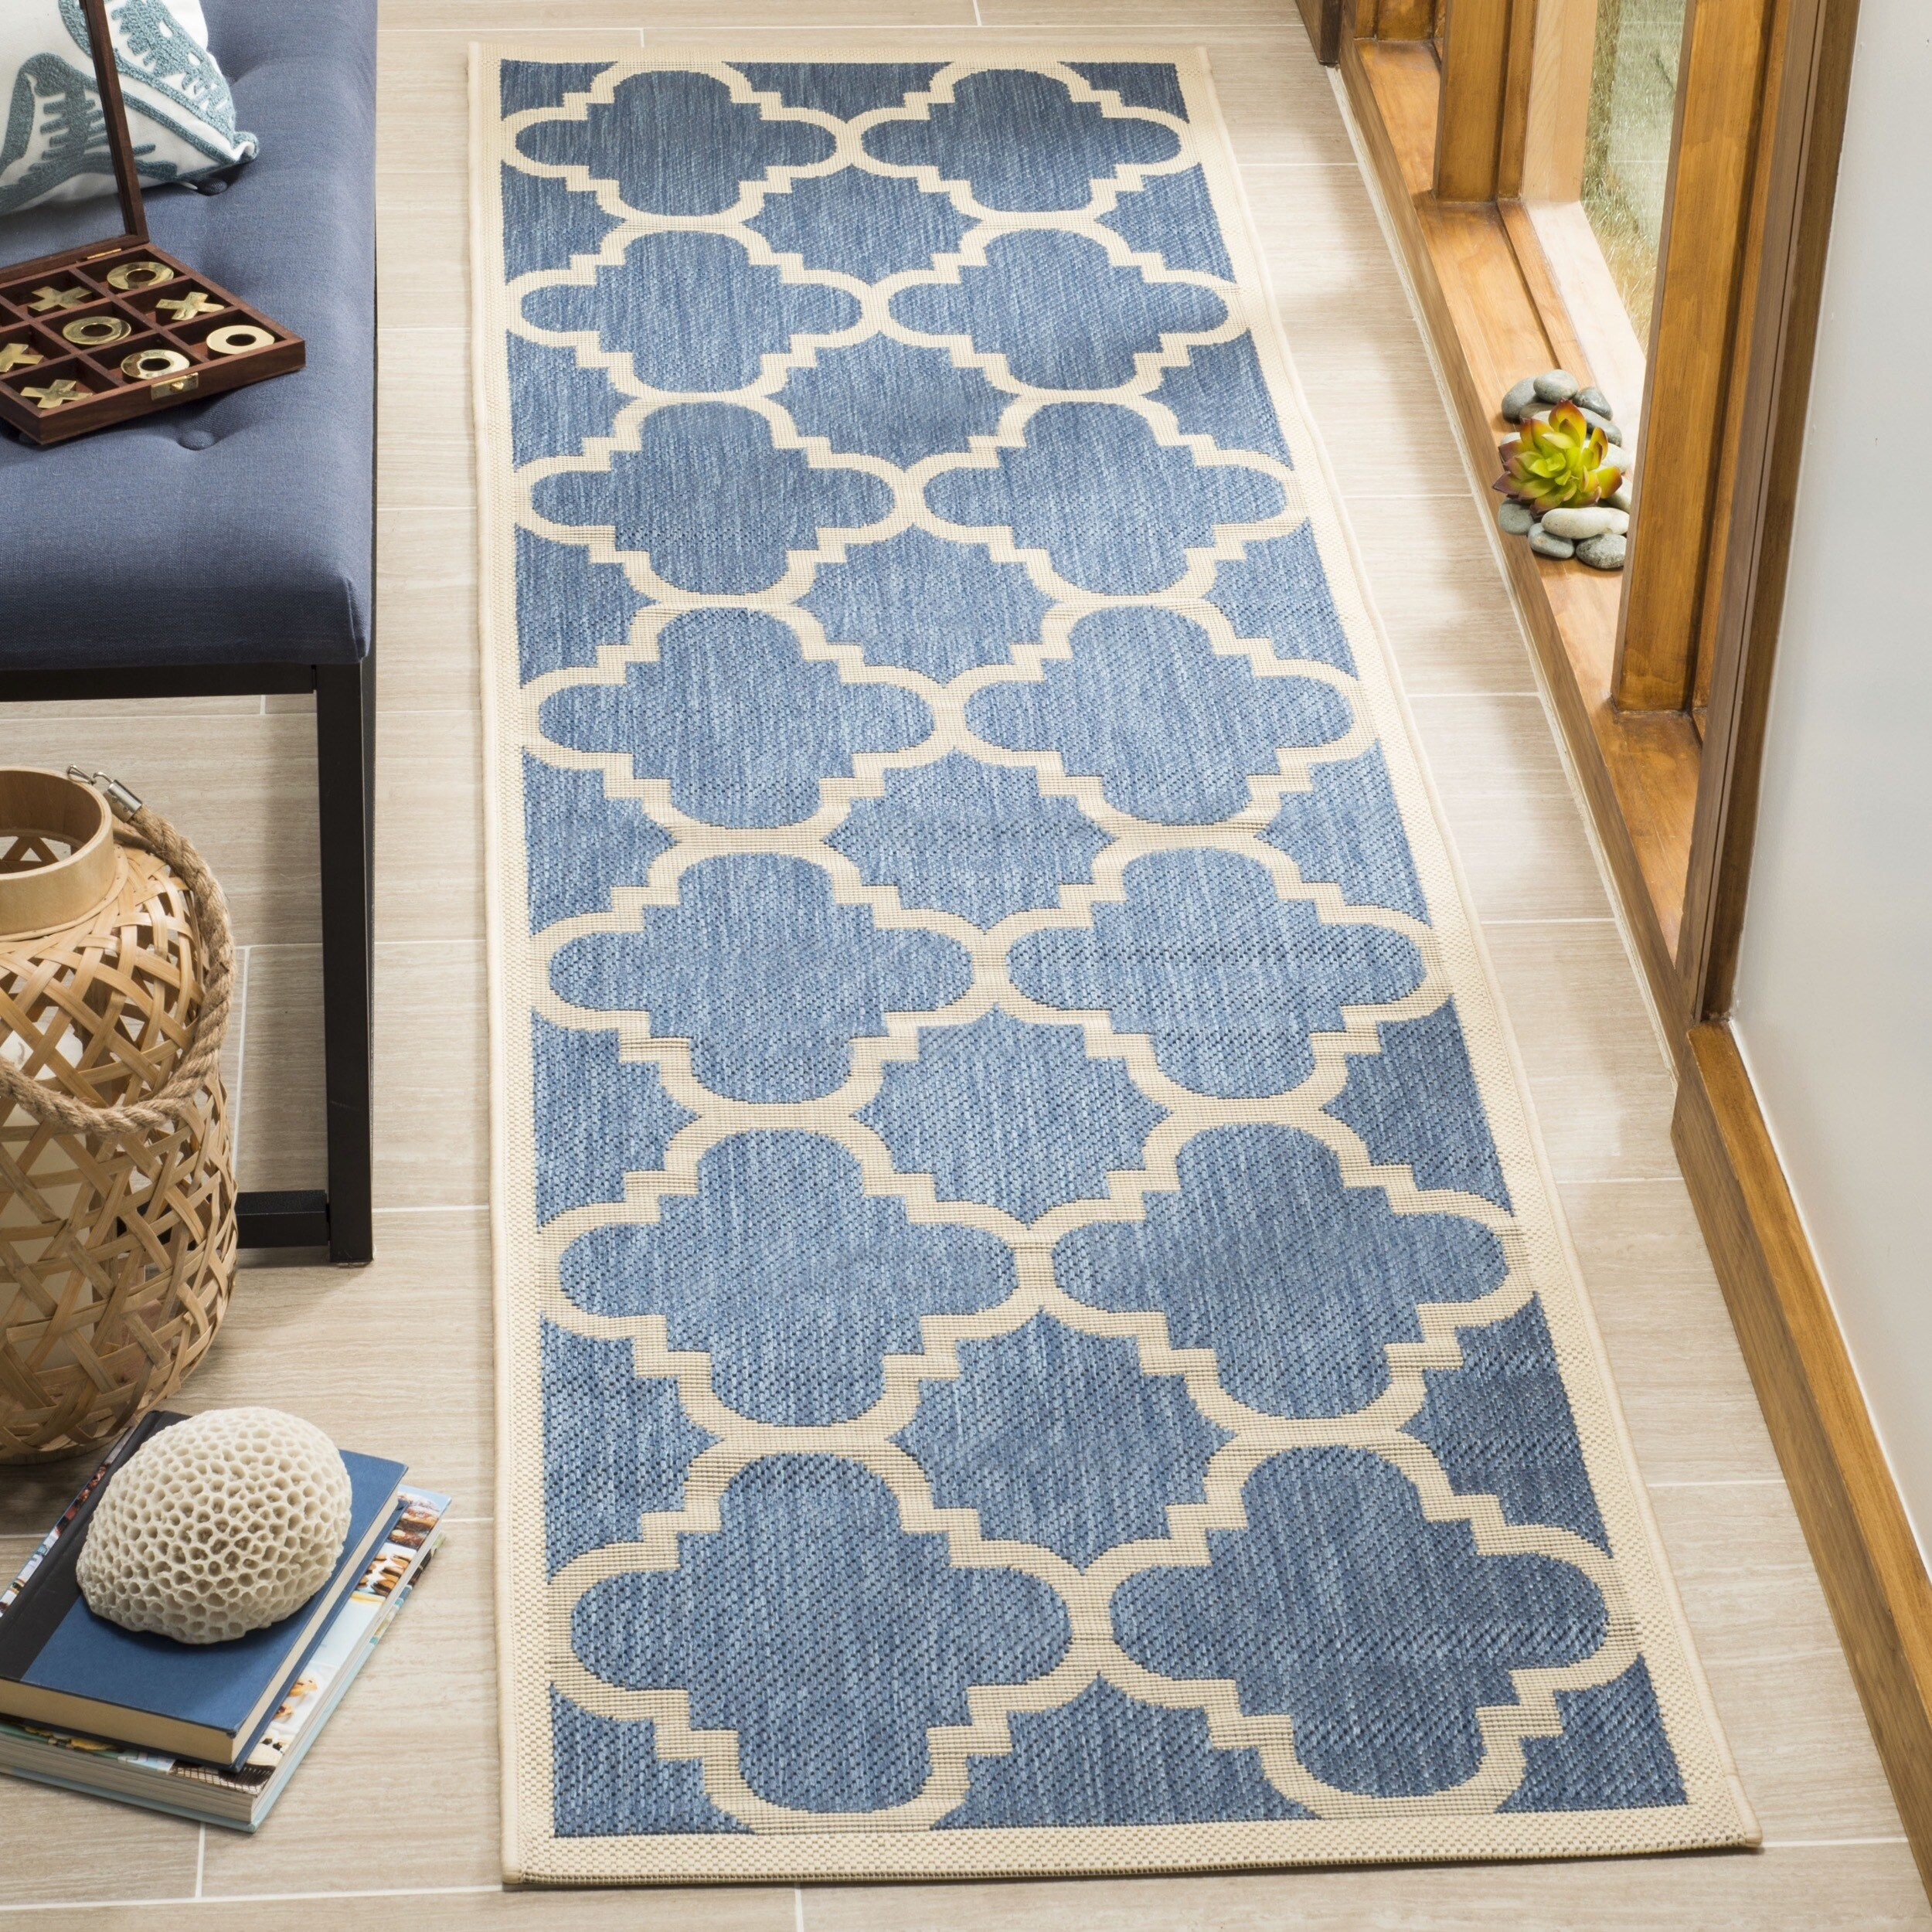 Safavieh Courtyard Safavieh Courtyard Quatrefoil Blue Beige Indoor Outdoor Rug